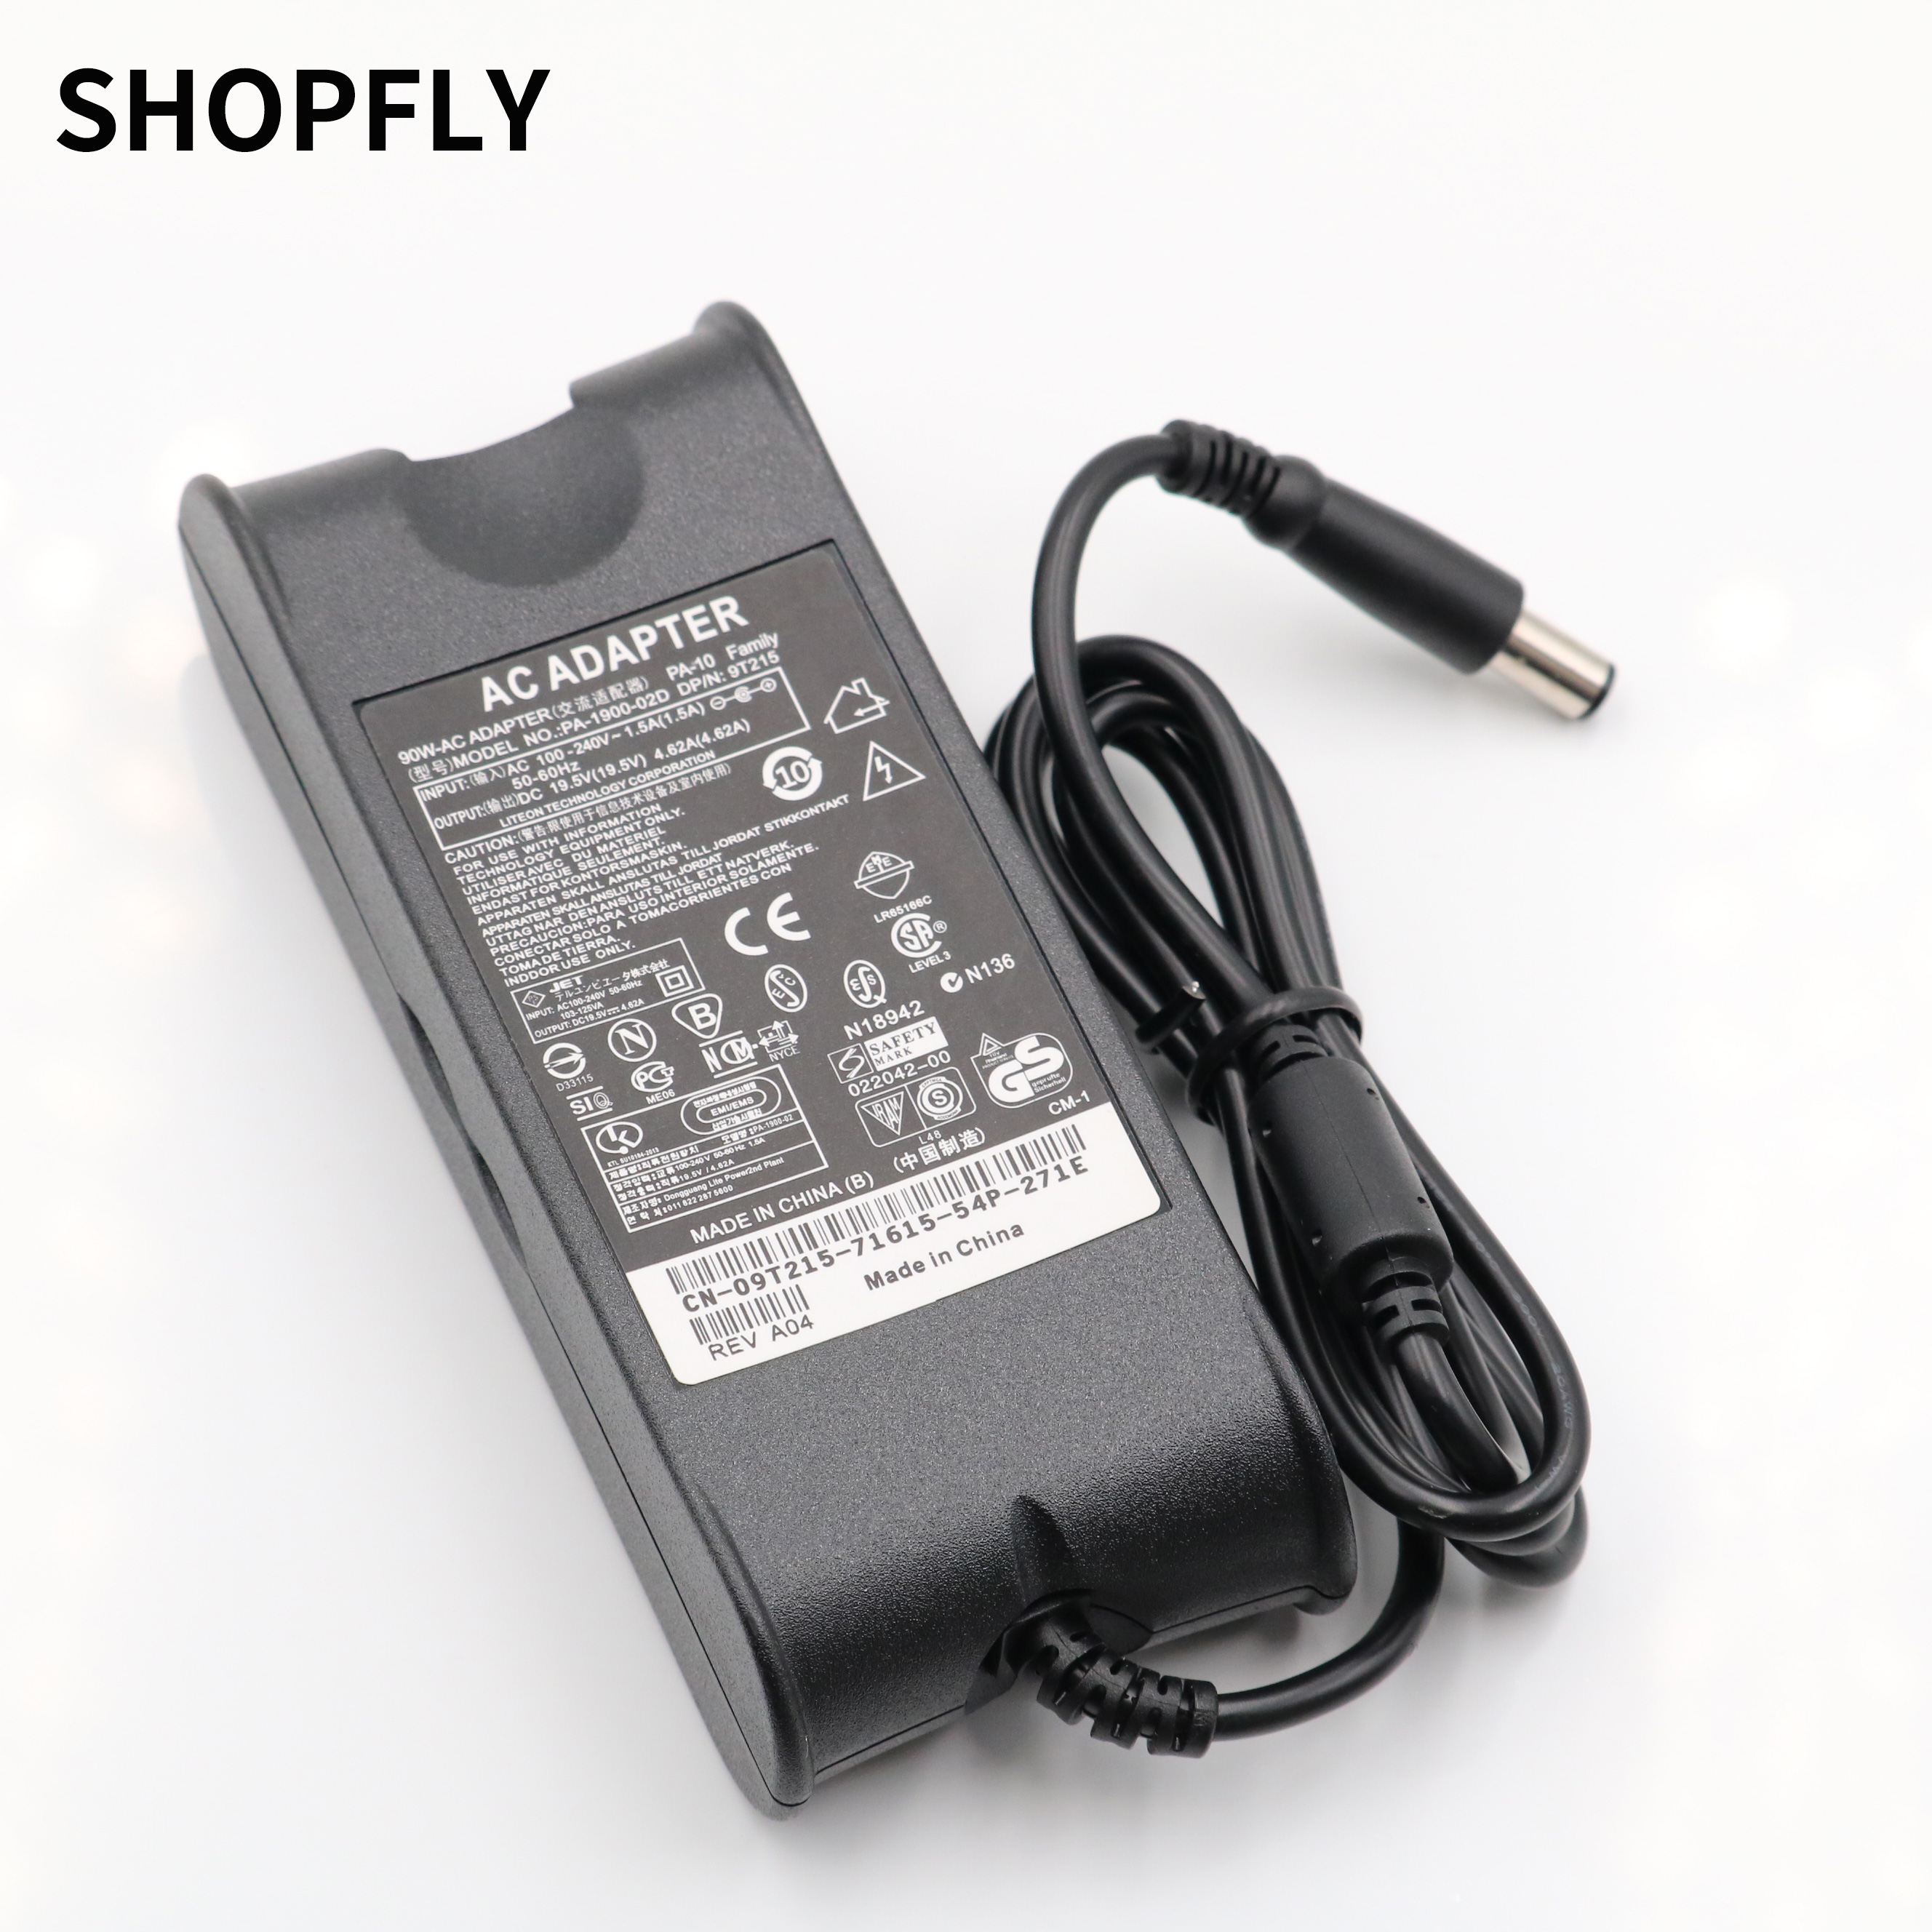 Dell Latitude E6320 E6330 E6400 E6430 E6410 E6420 E5440 E6520 D620 D630 E6530 Laptop Adapter 19.5V 4.62A Power Supply Charger